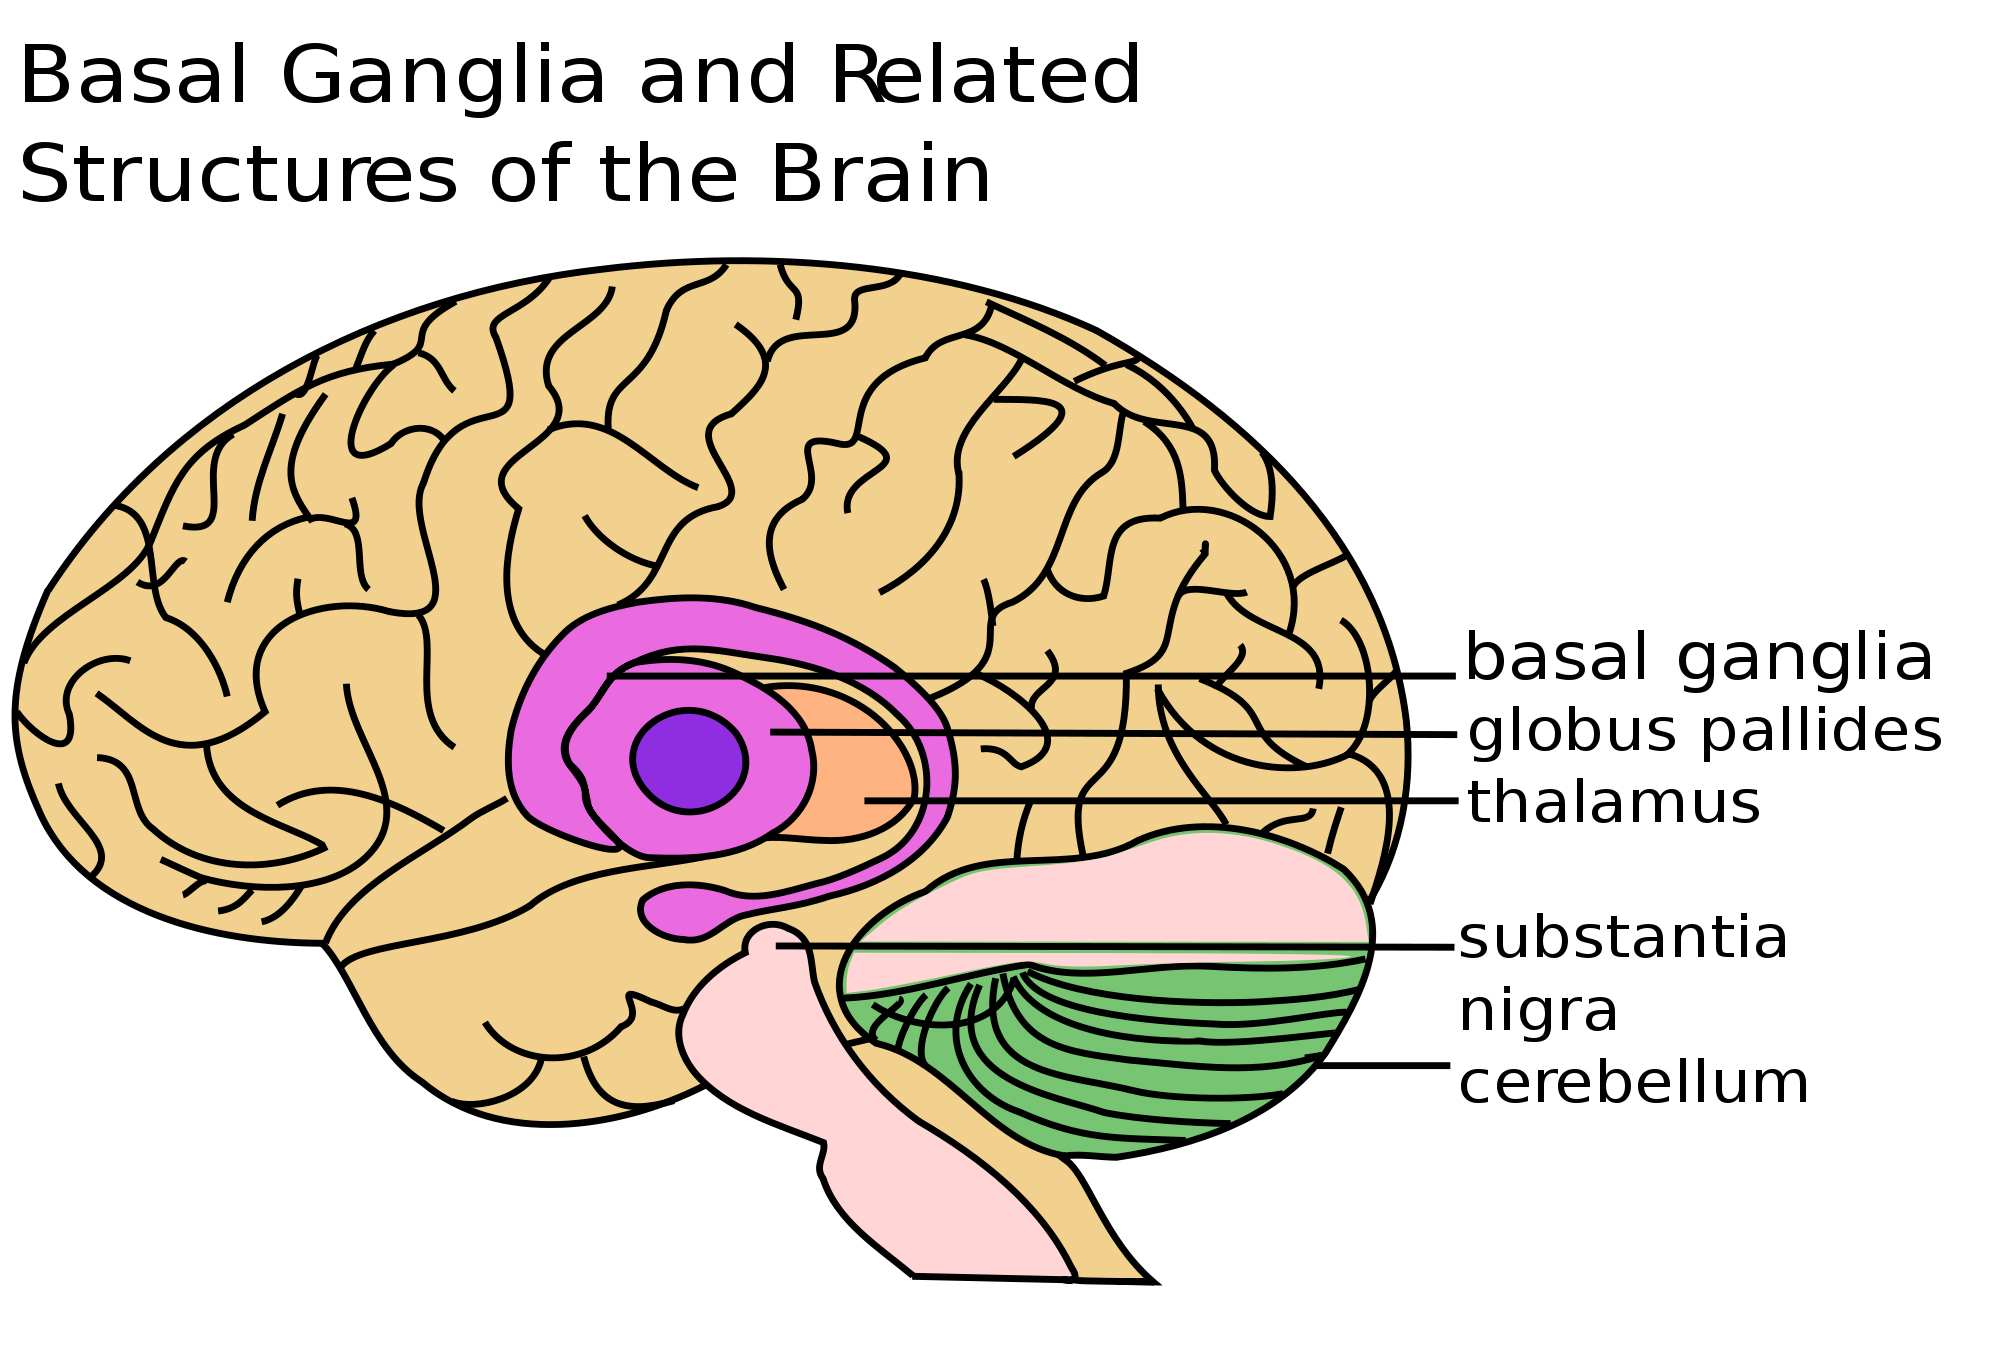 Basal ganglia and related structures of the brain   Via Wikipedia ...